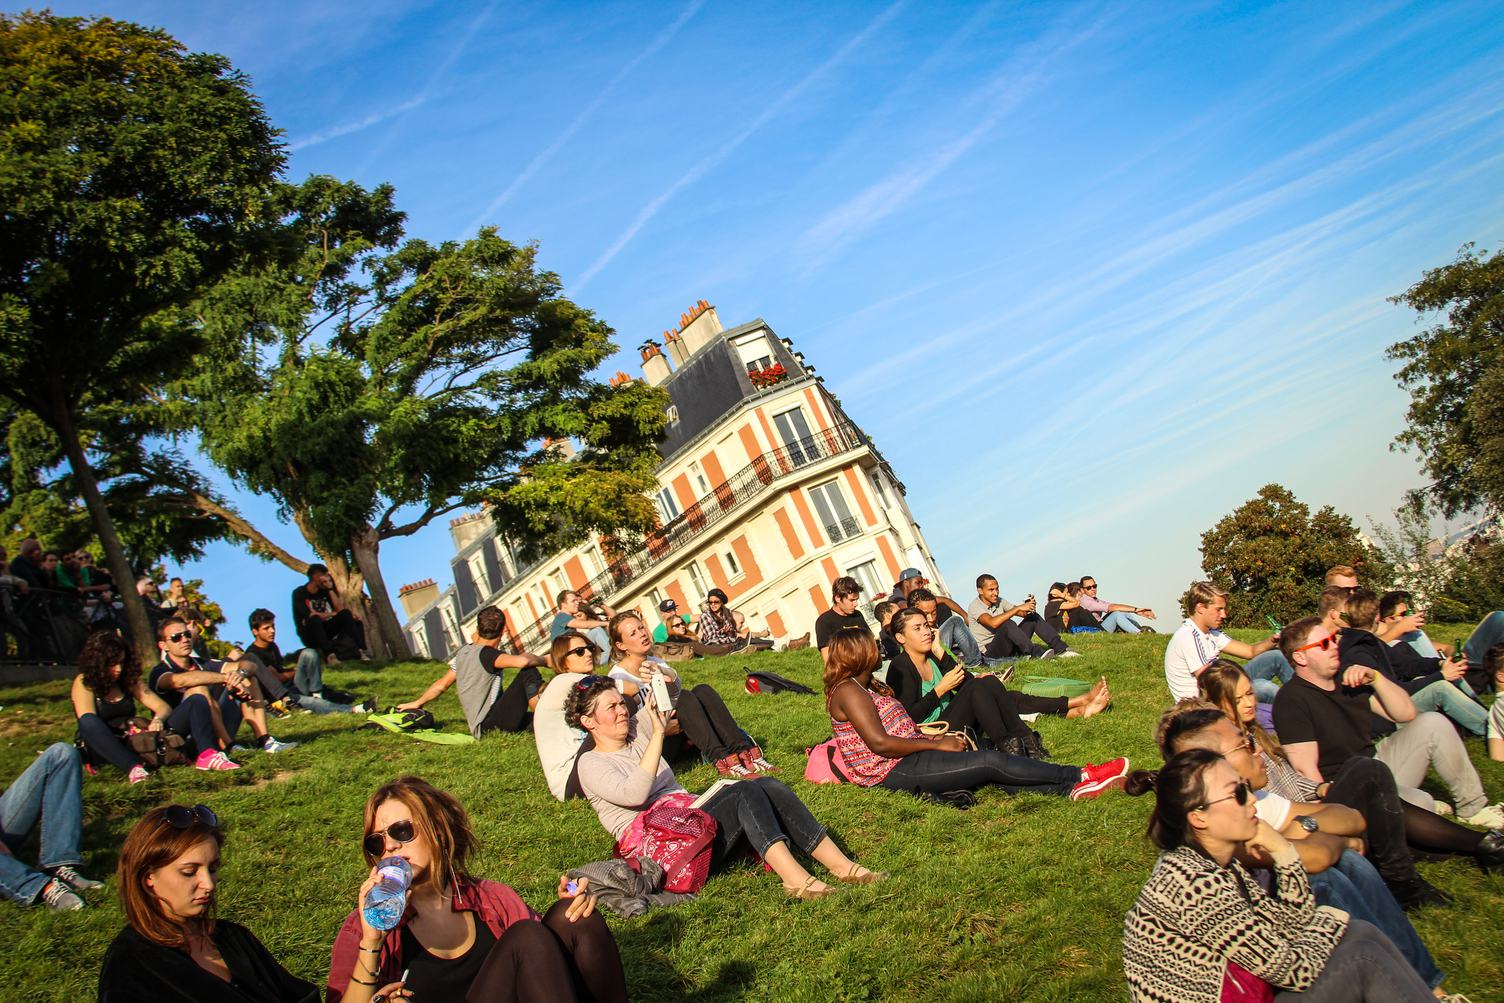 People Sitting on the Grass, Montmartre Hill, Paris